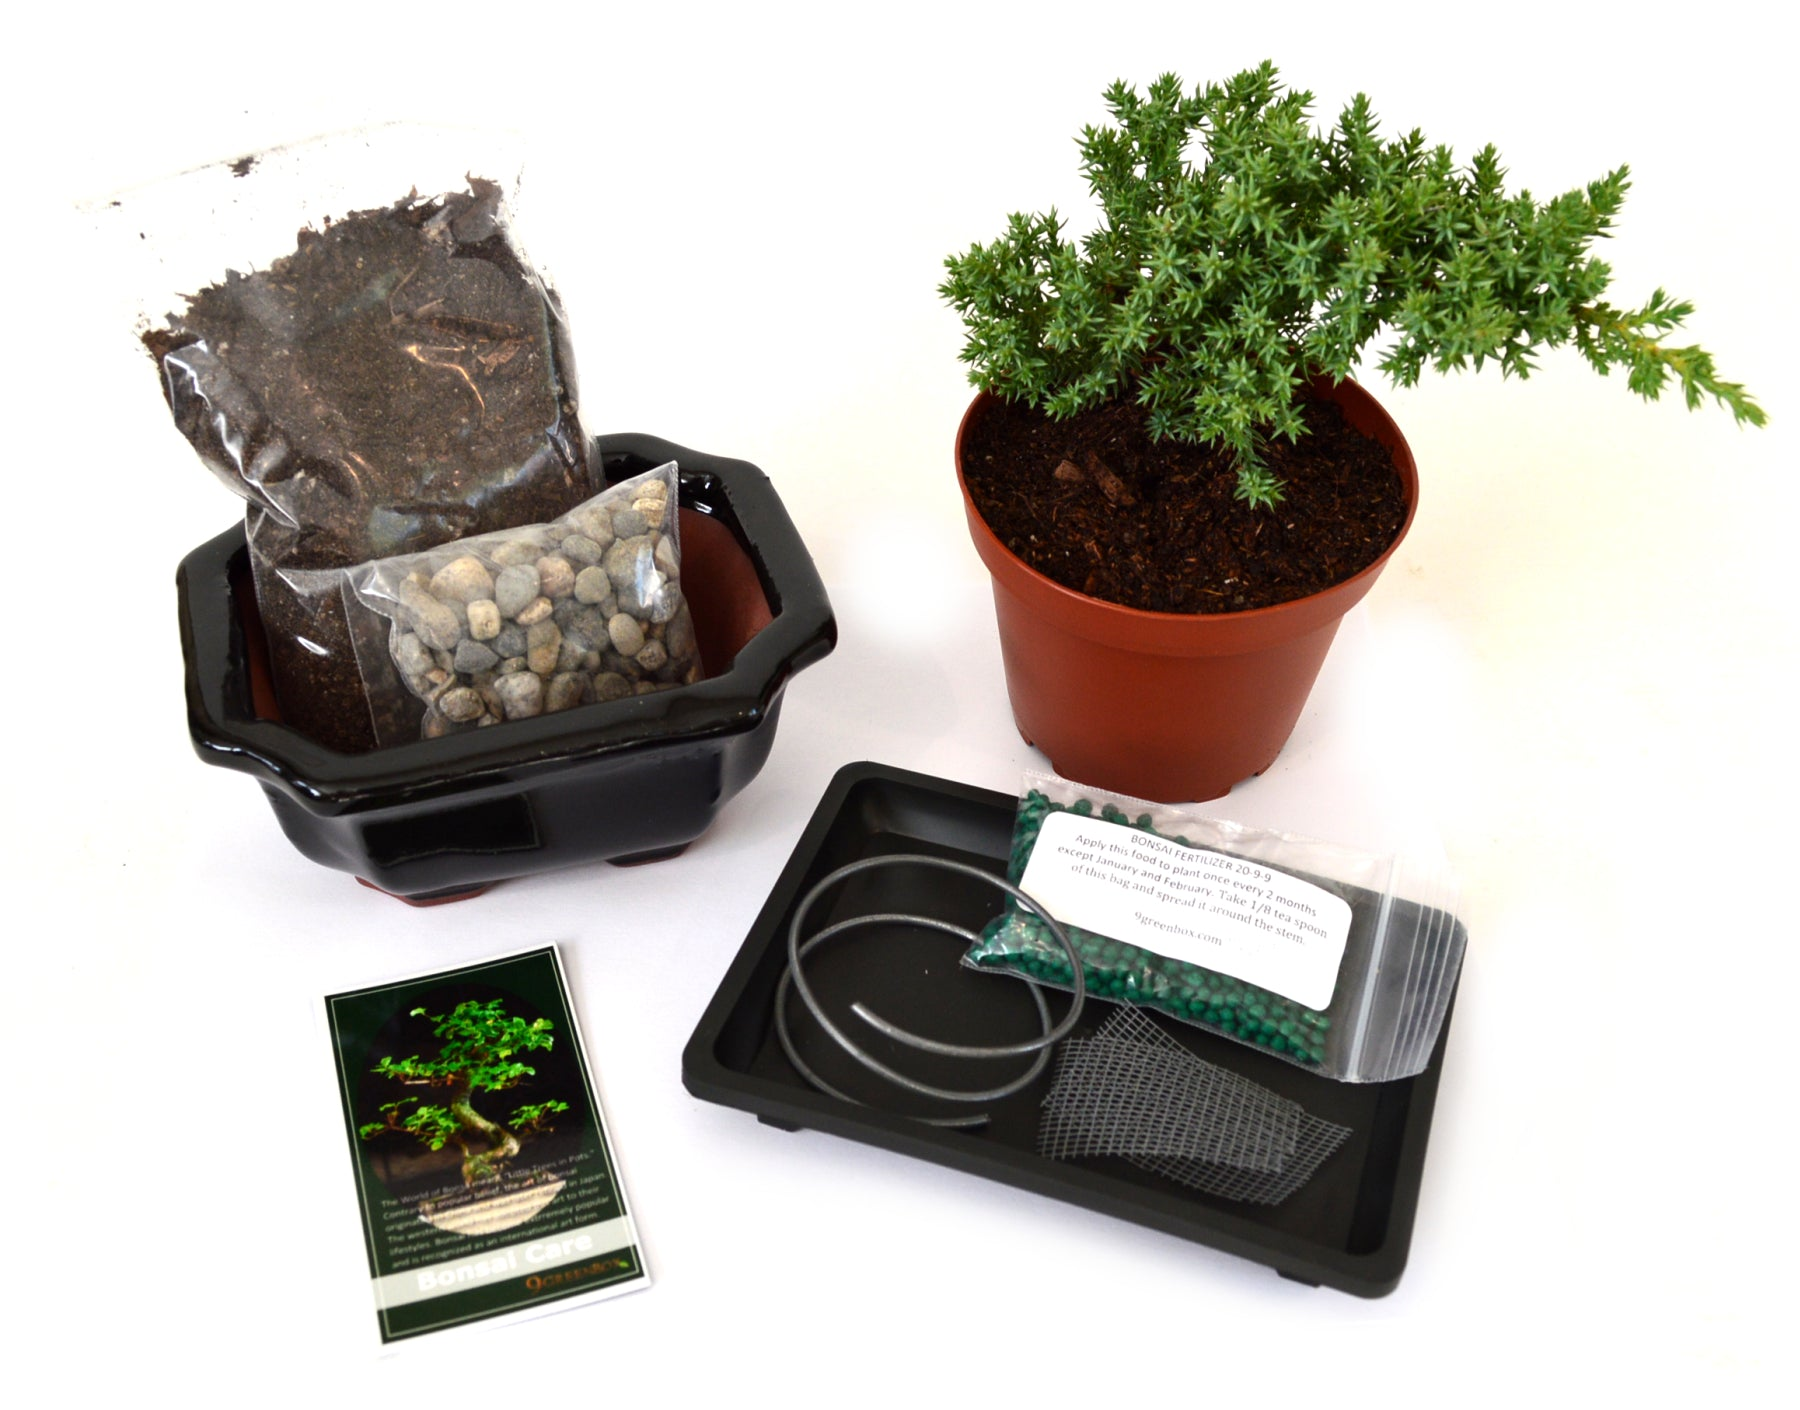 9greenbox Complete Juniper Bonsai Tree Starter Kit With Ceramic Wiring Vase And Water Tray